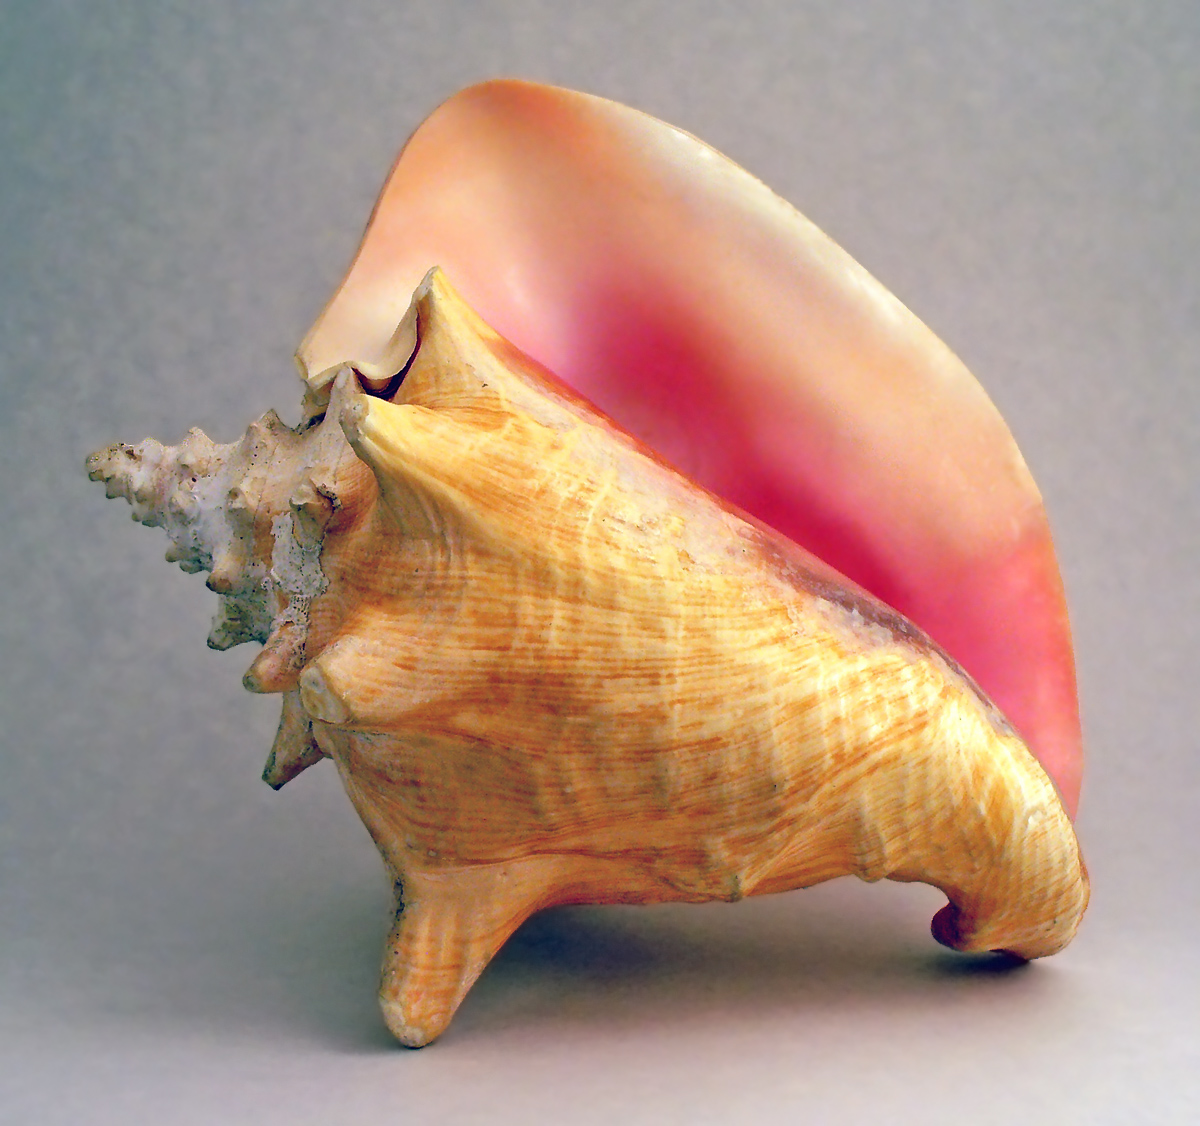 Wikipedia:Featured picture candidates/Conch shell - Wikipedia